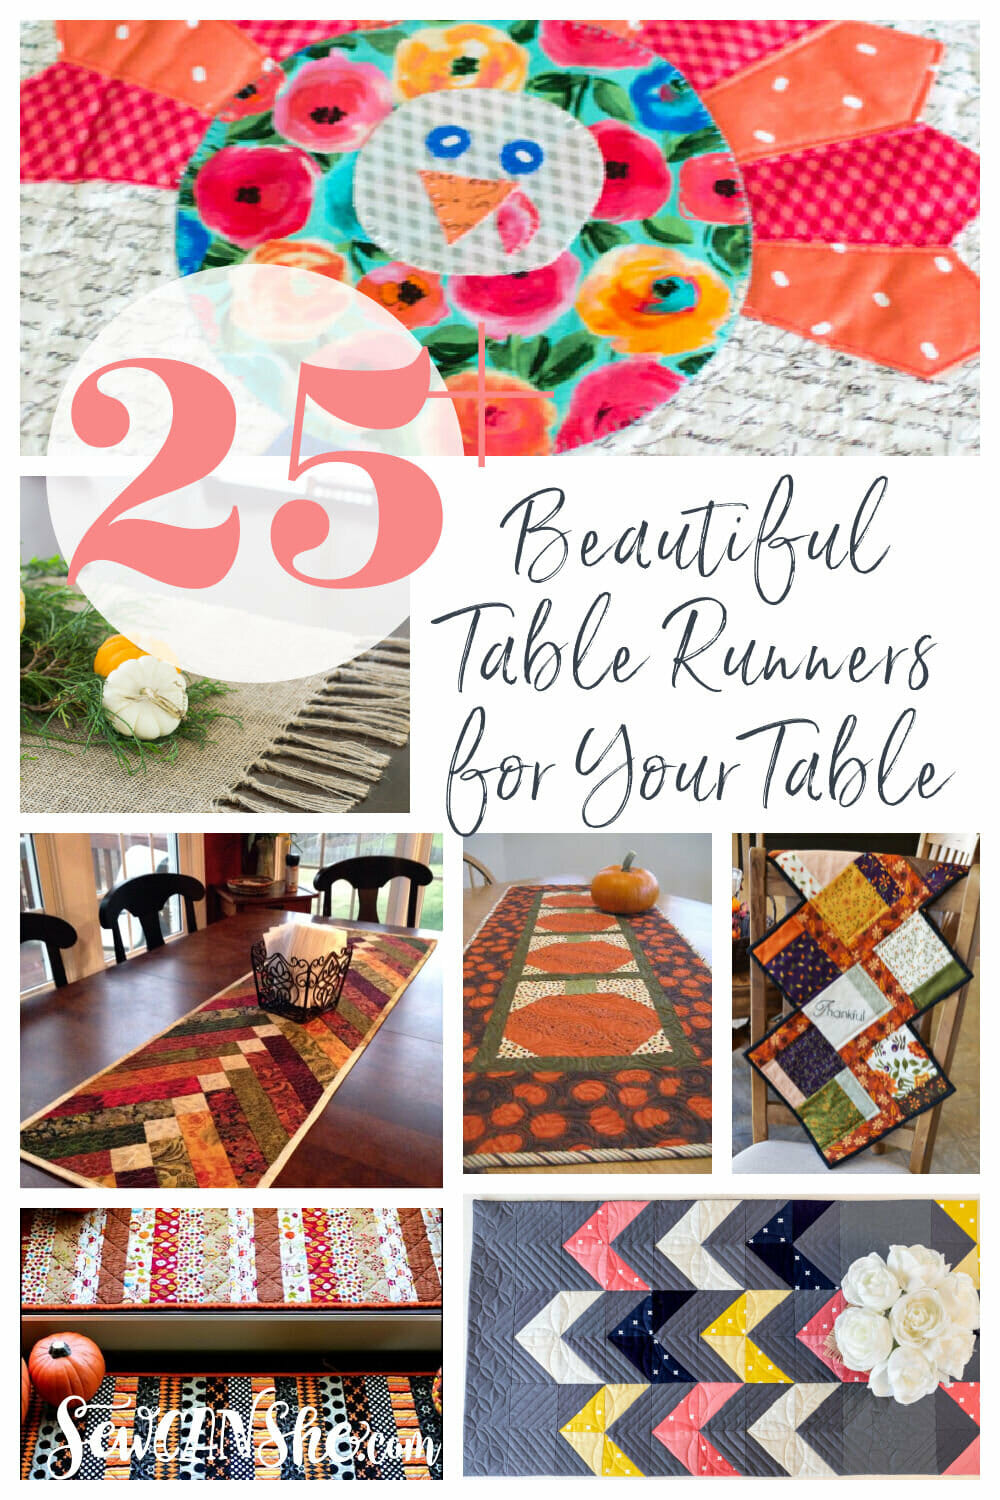 25+ Beautiful Table Runners for Your Table - All Free